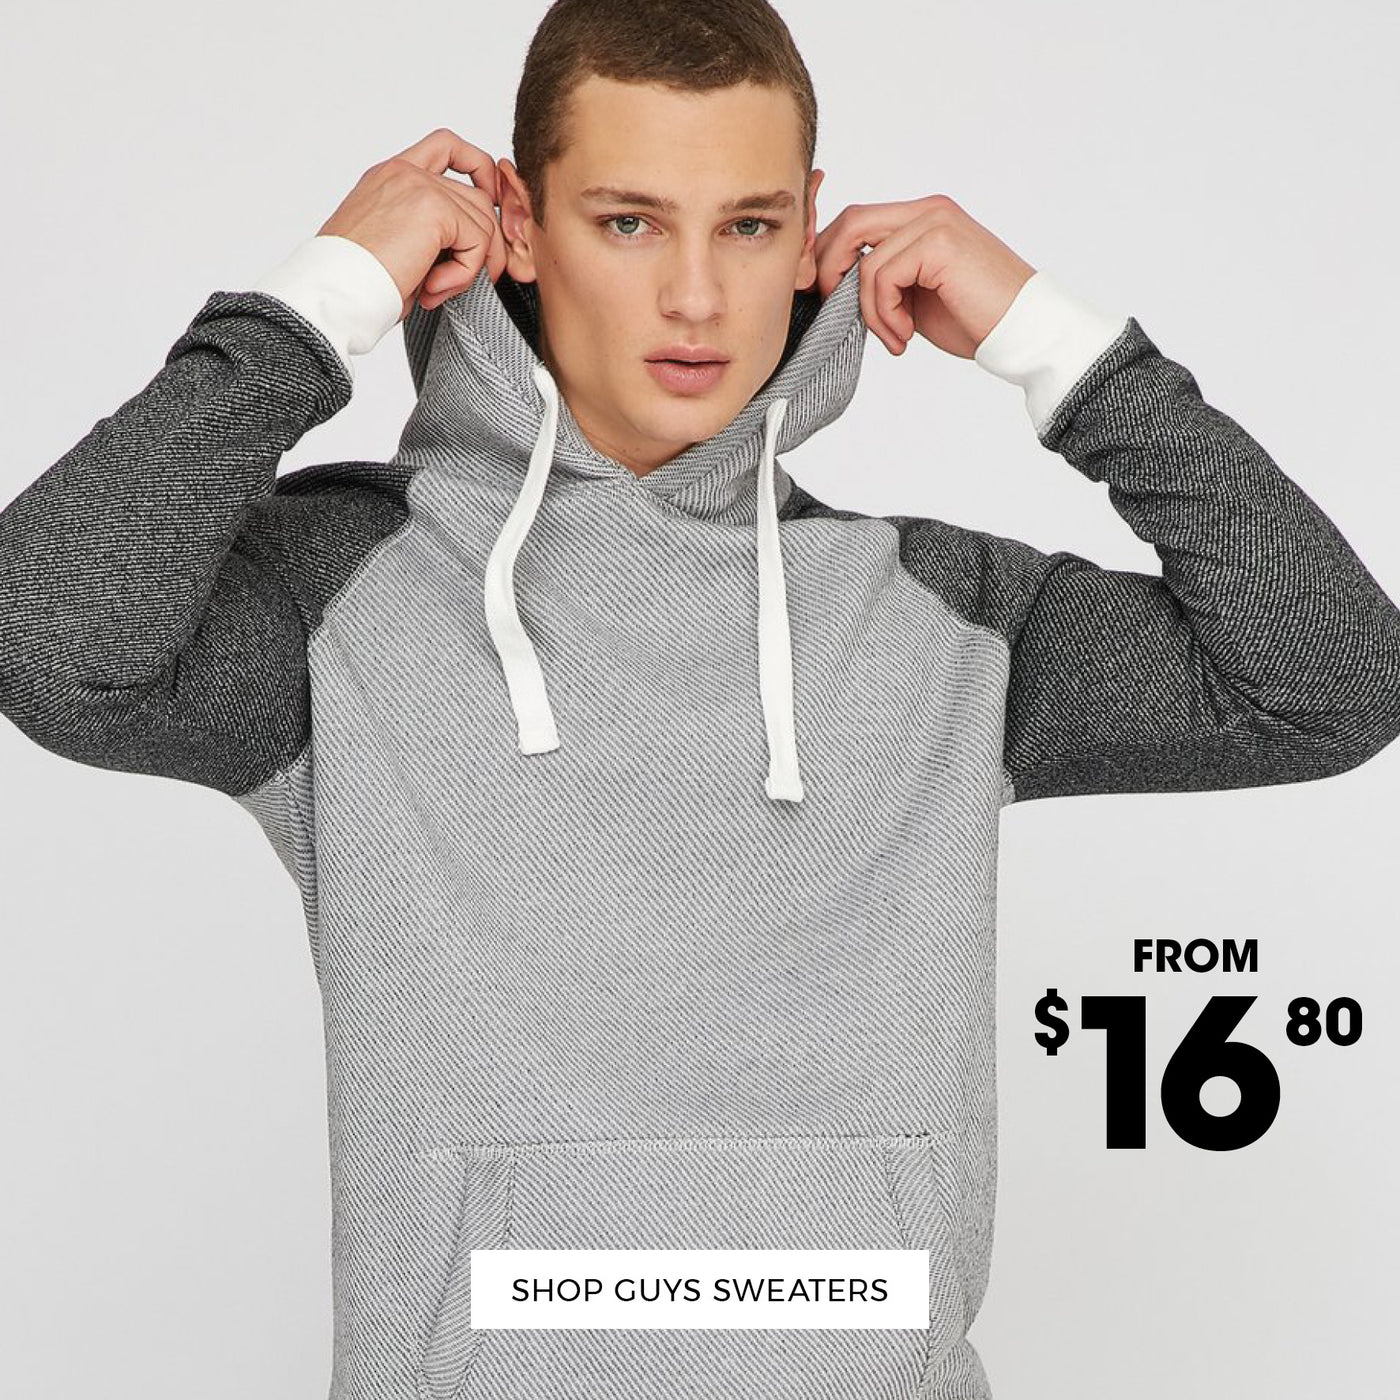 Stitches | Shop Guys Outerwear from $16.80